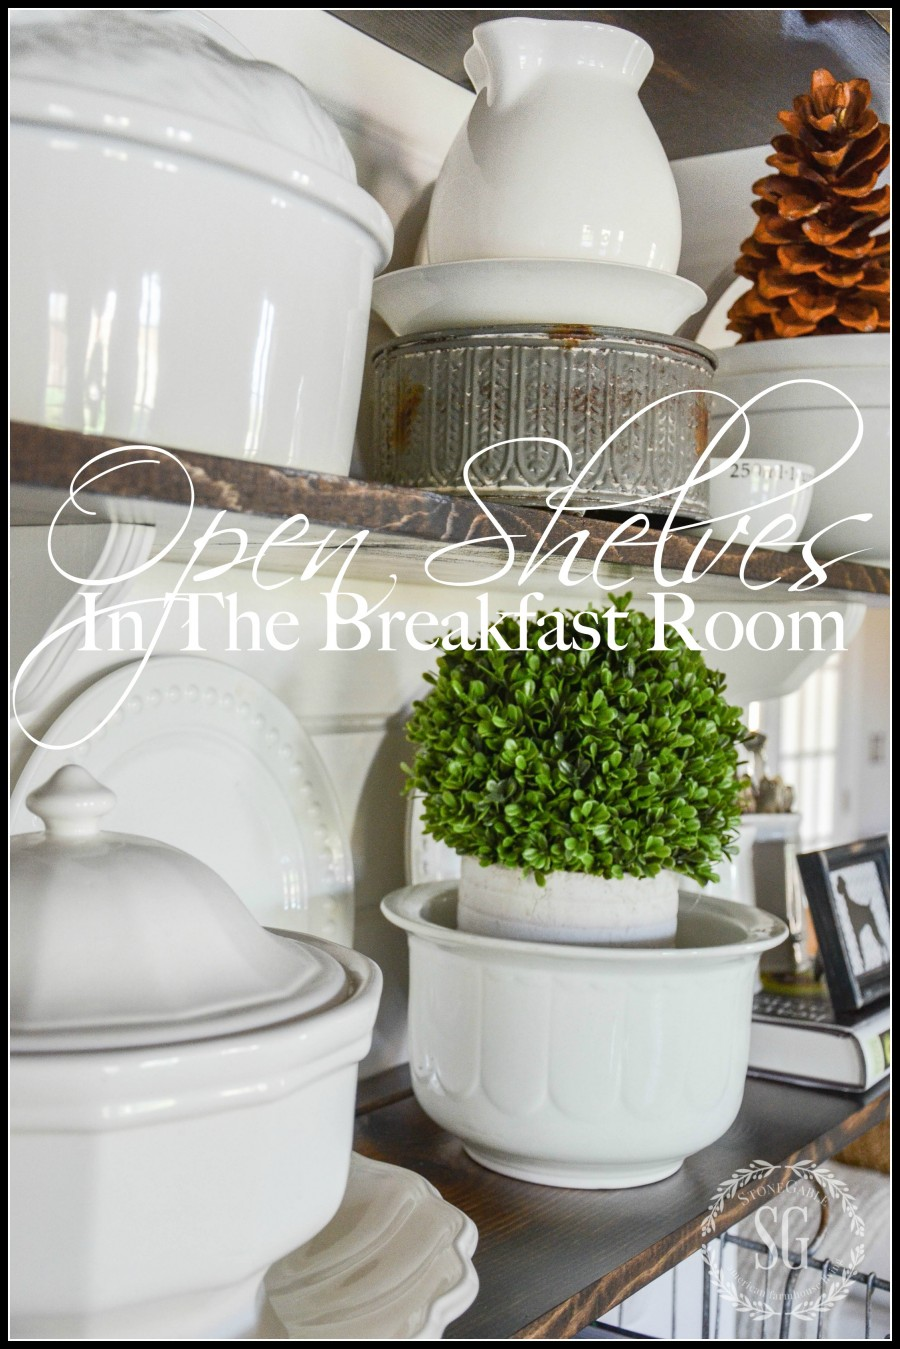 OPEN SHELVES IN THE BREAKFAST ROOM